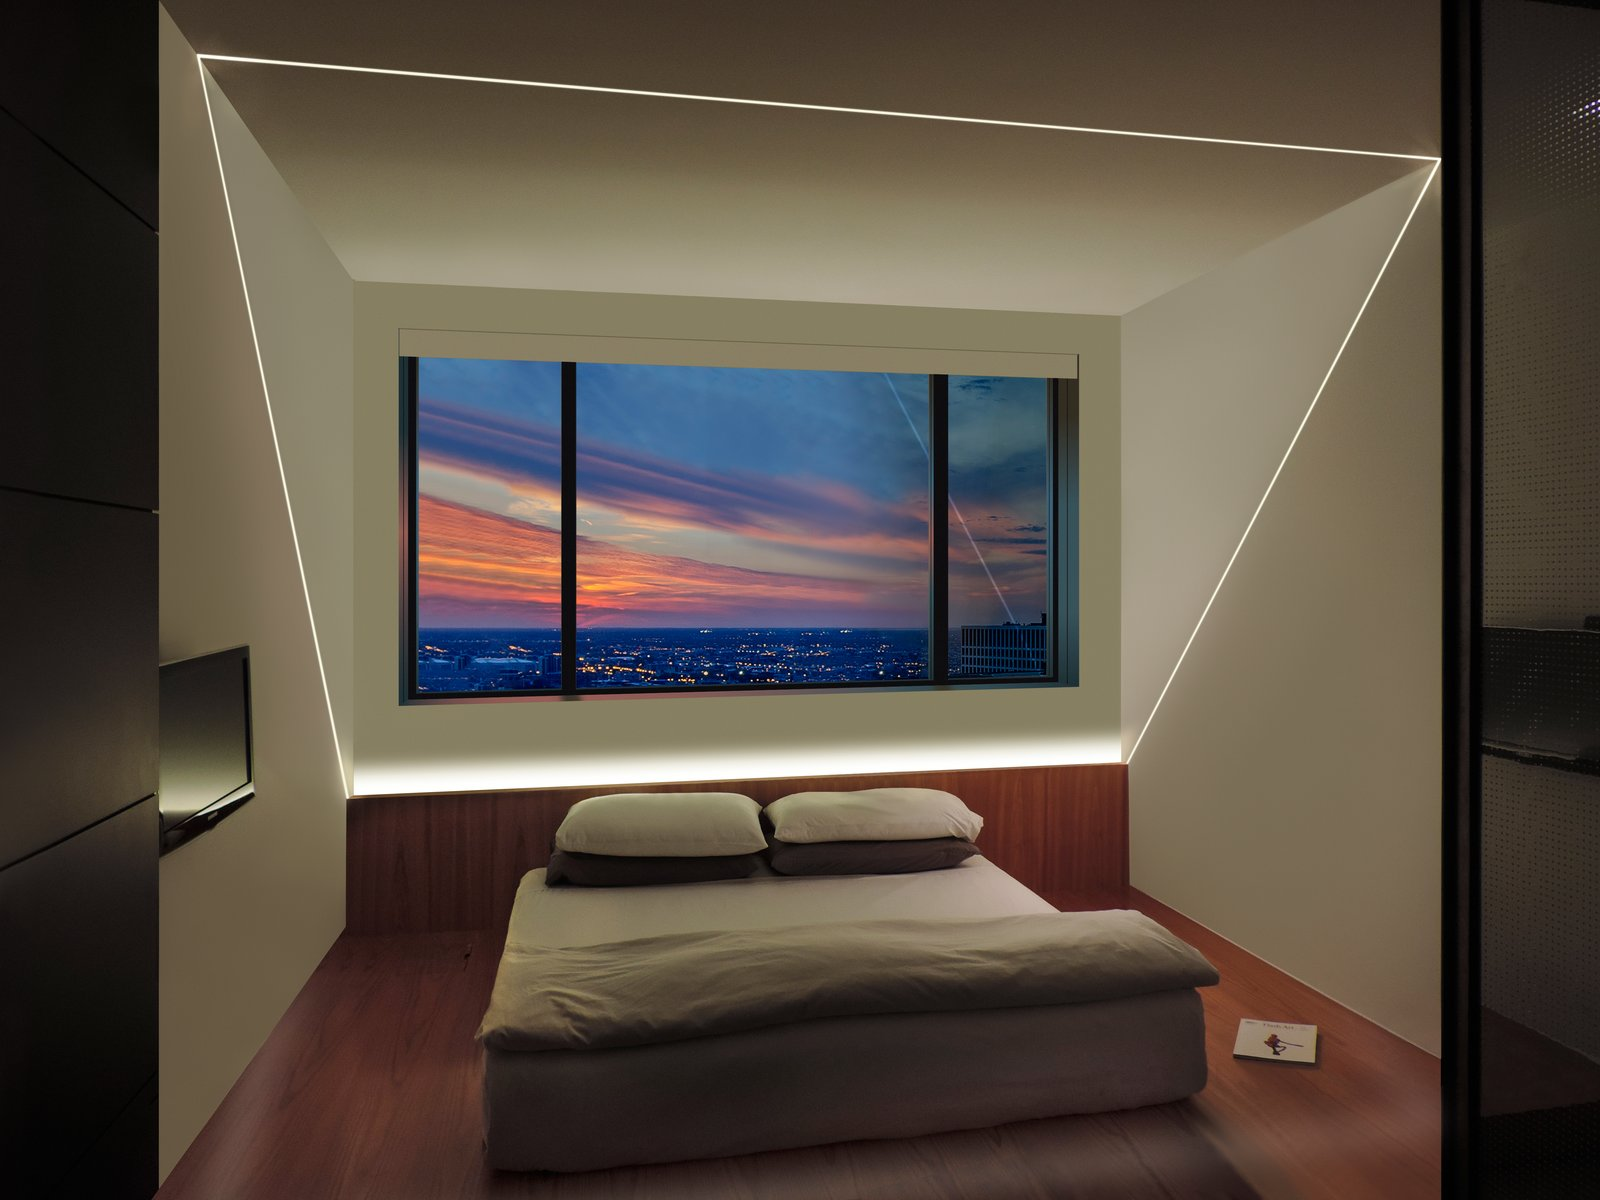 TruLine LED lighting is the centerpiece of this bedroom design  Bedroom